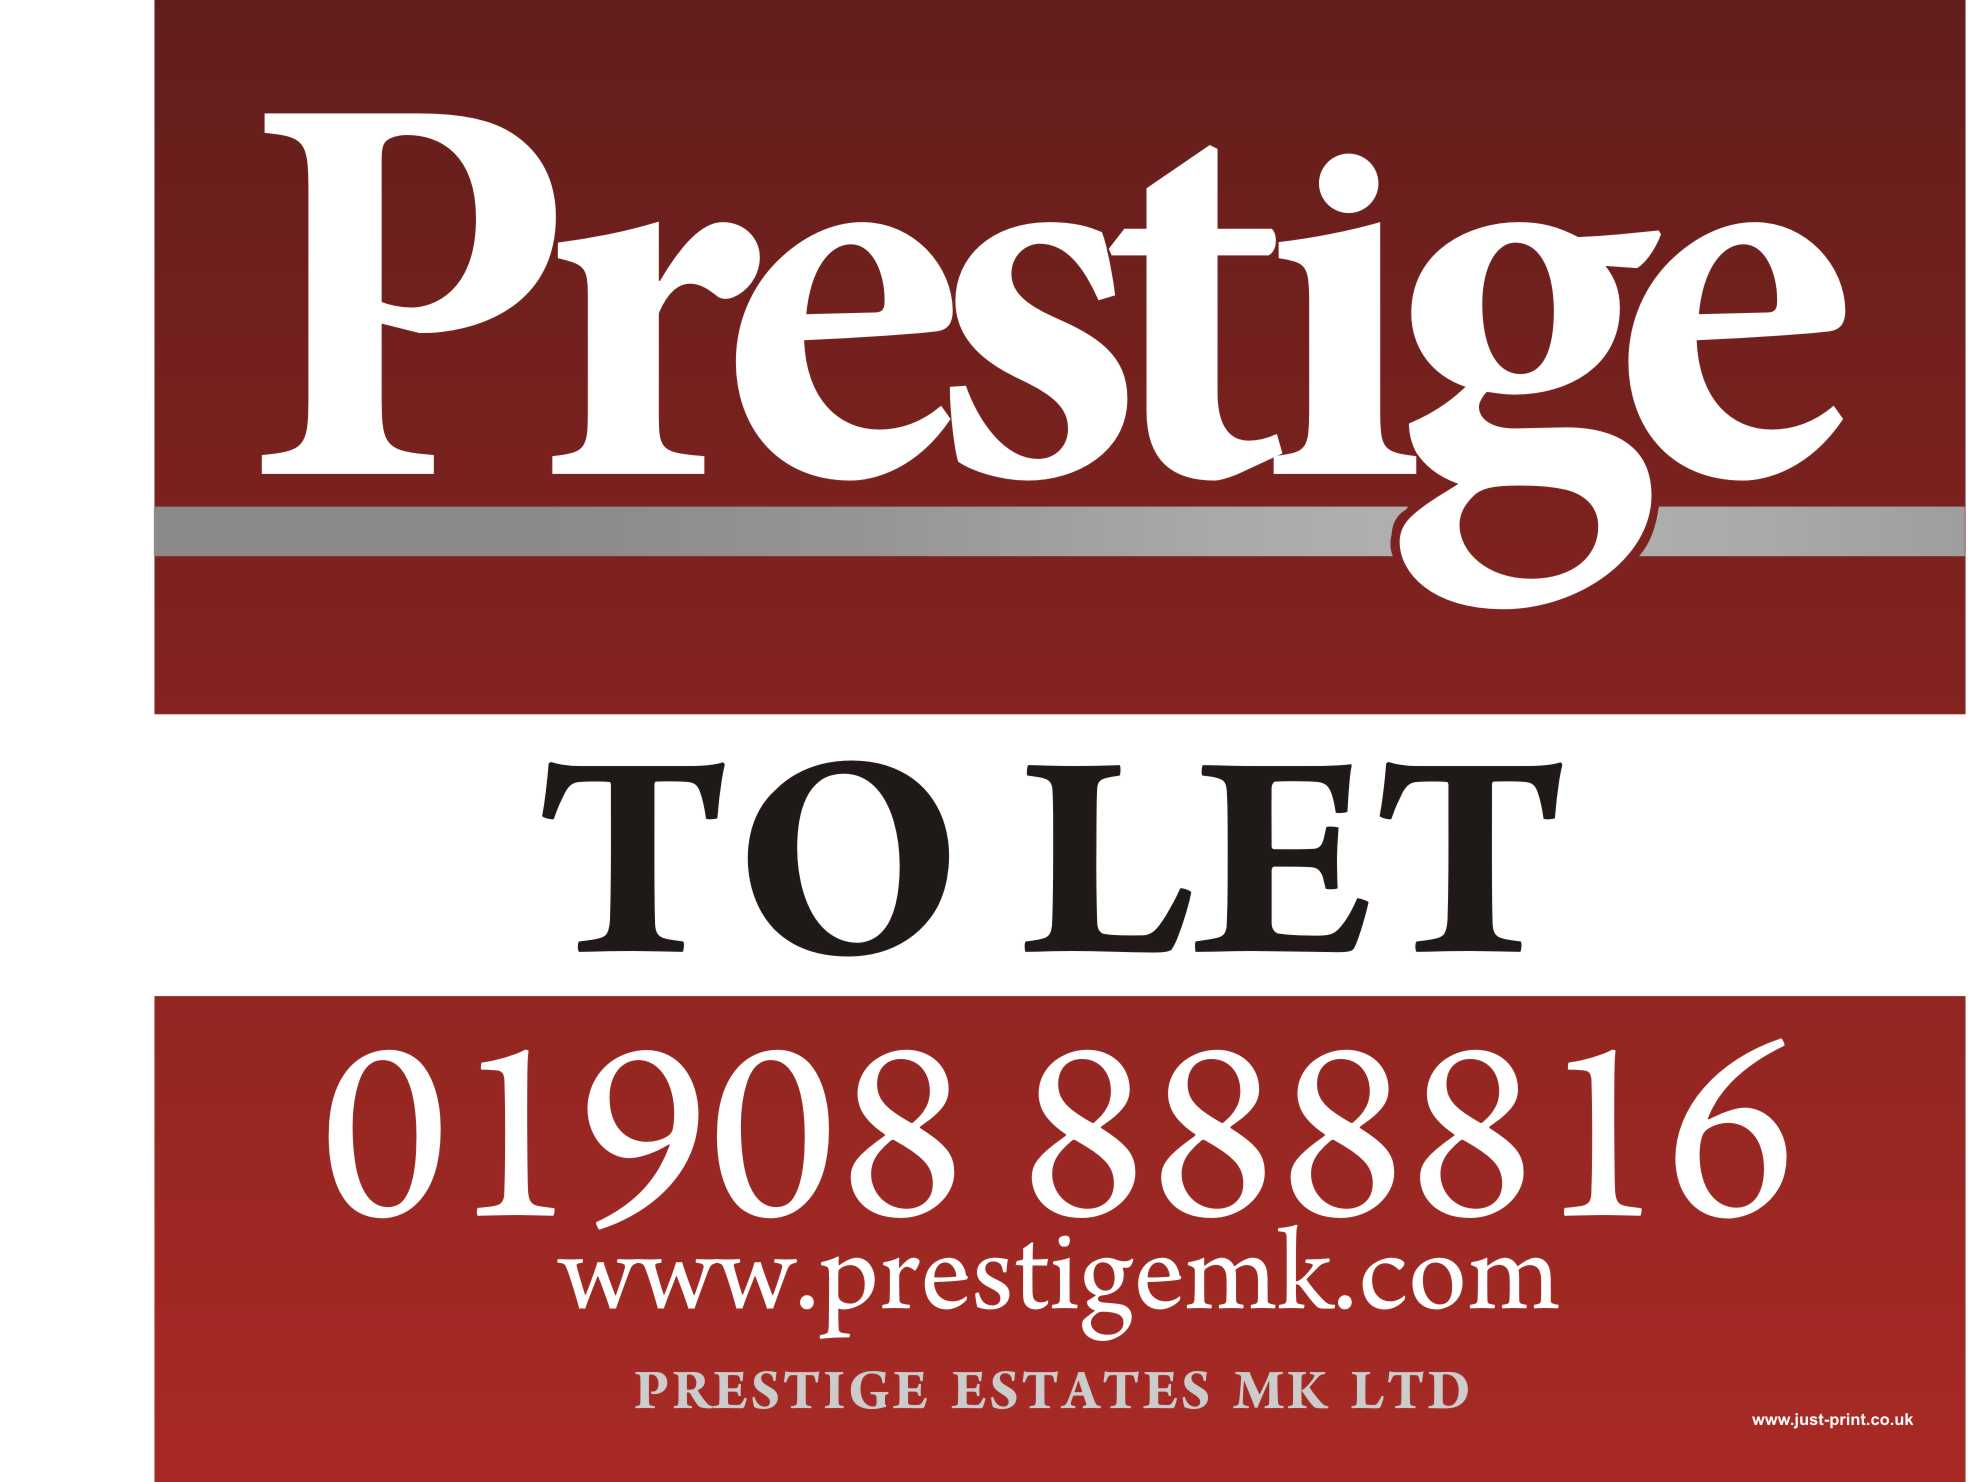 estateagentboardshop-prestige-mk-ltd